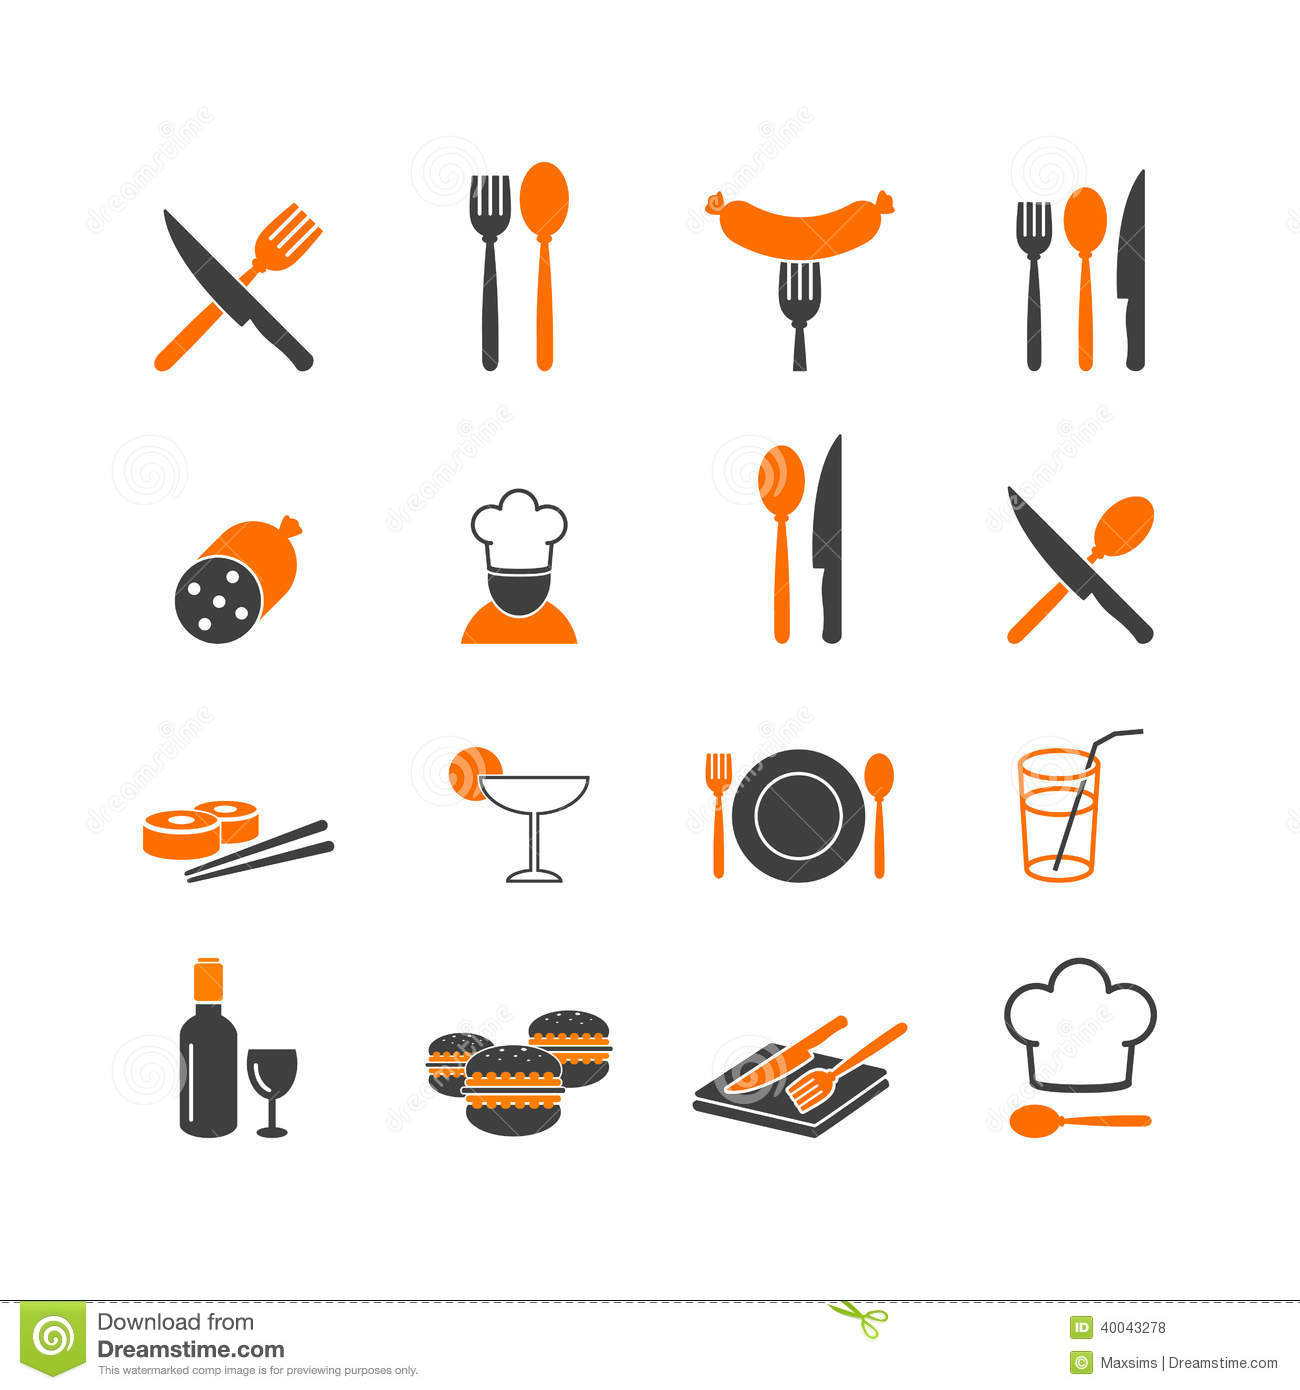 Restaurant Kitchenware restaurant menu kitchenware icons button logo stock vector - image